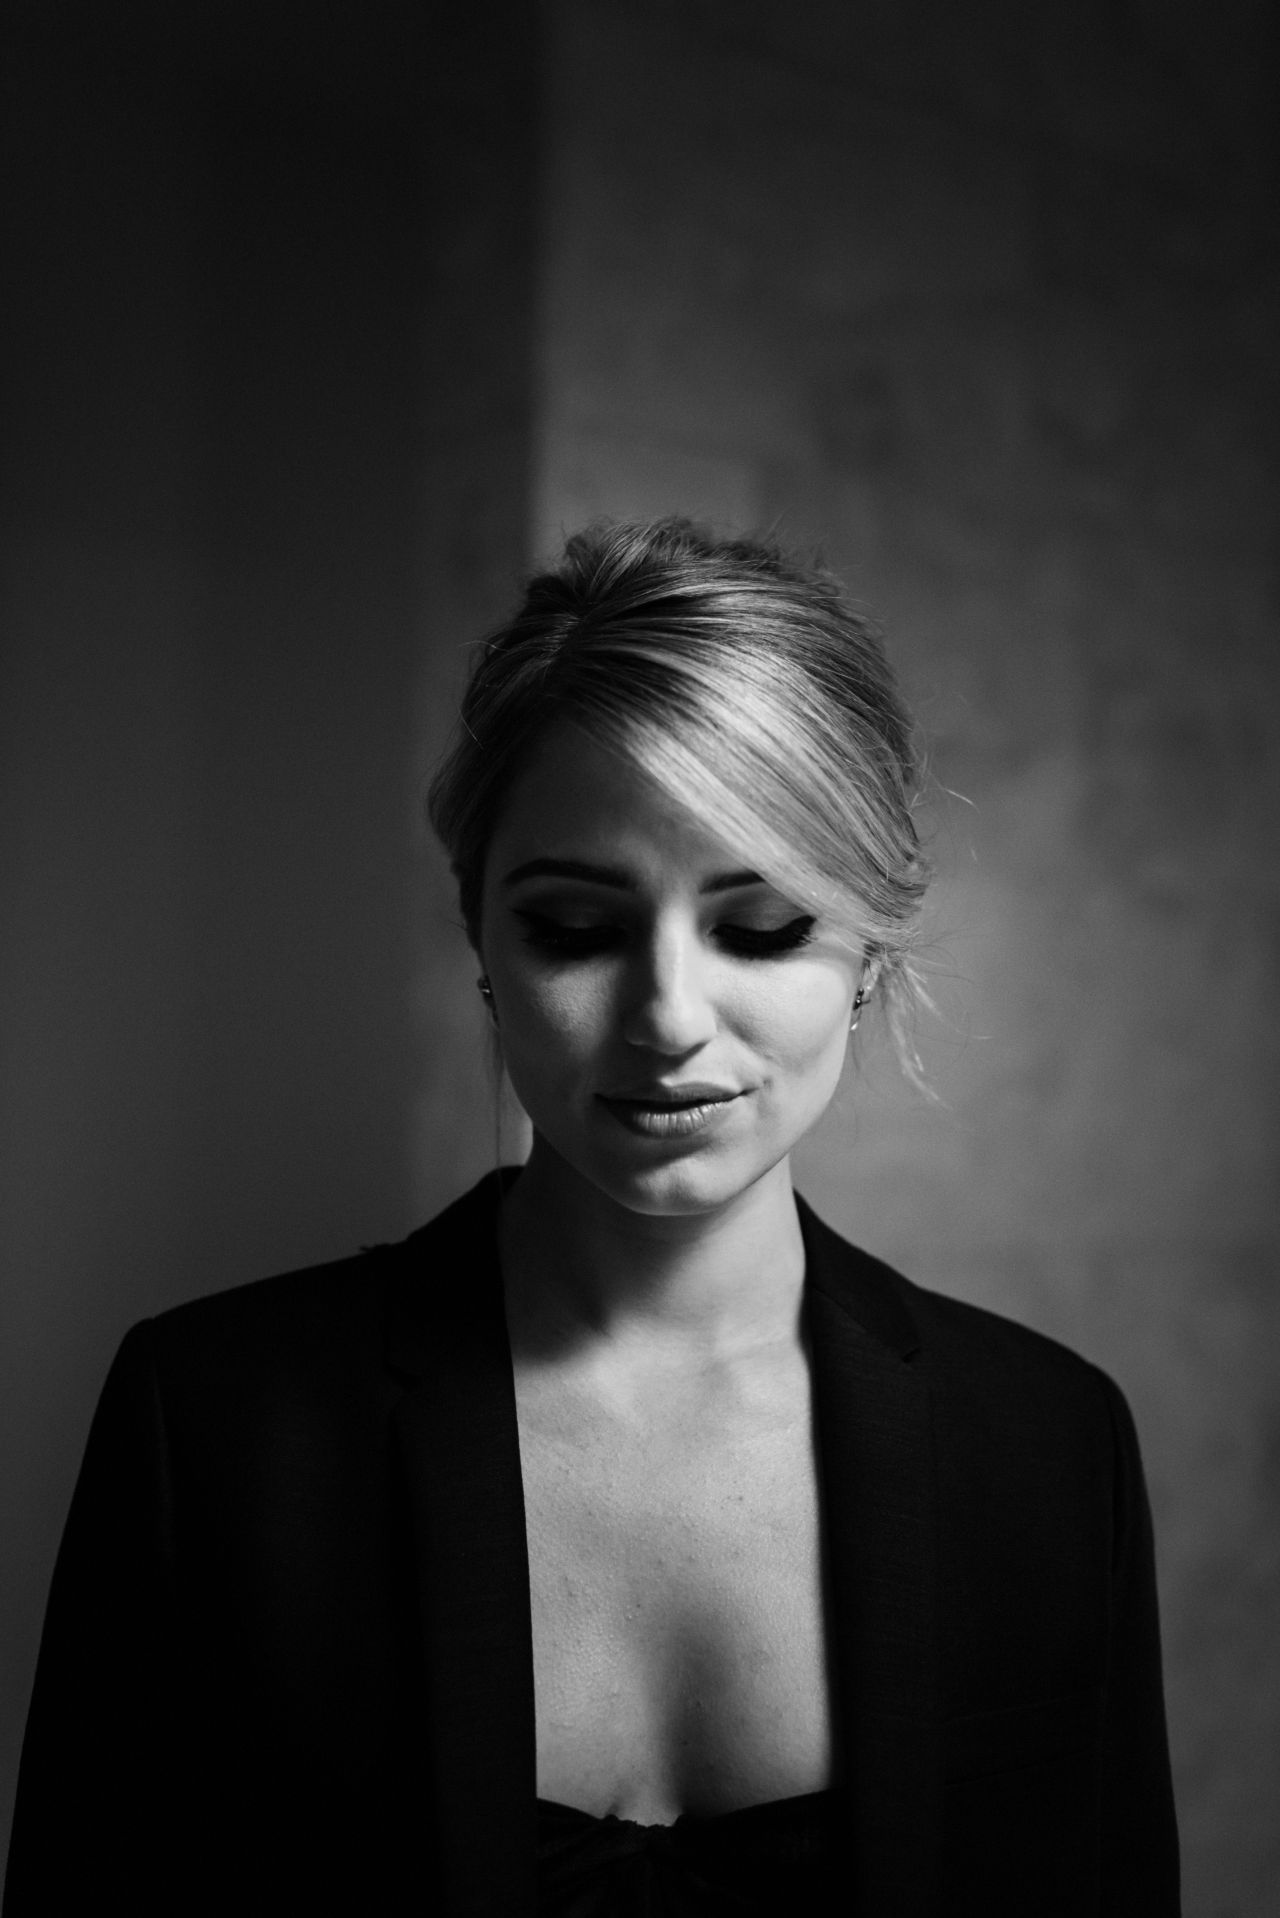 dianna agron 2017 - photo #15